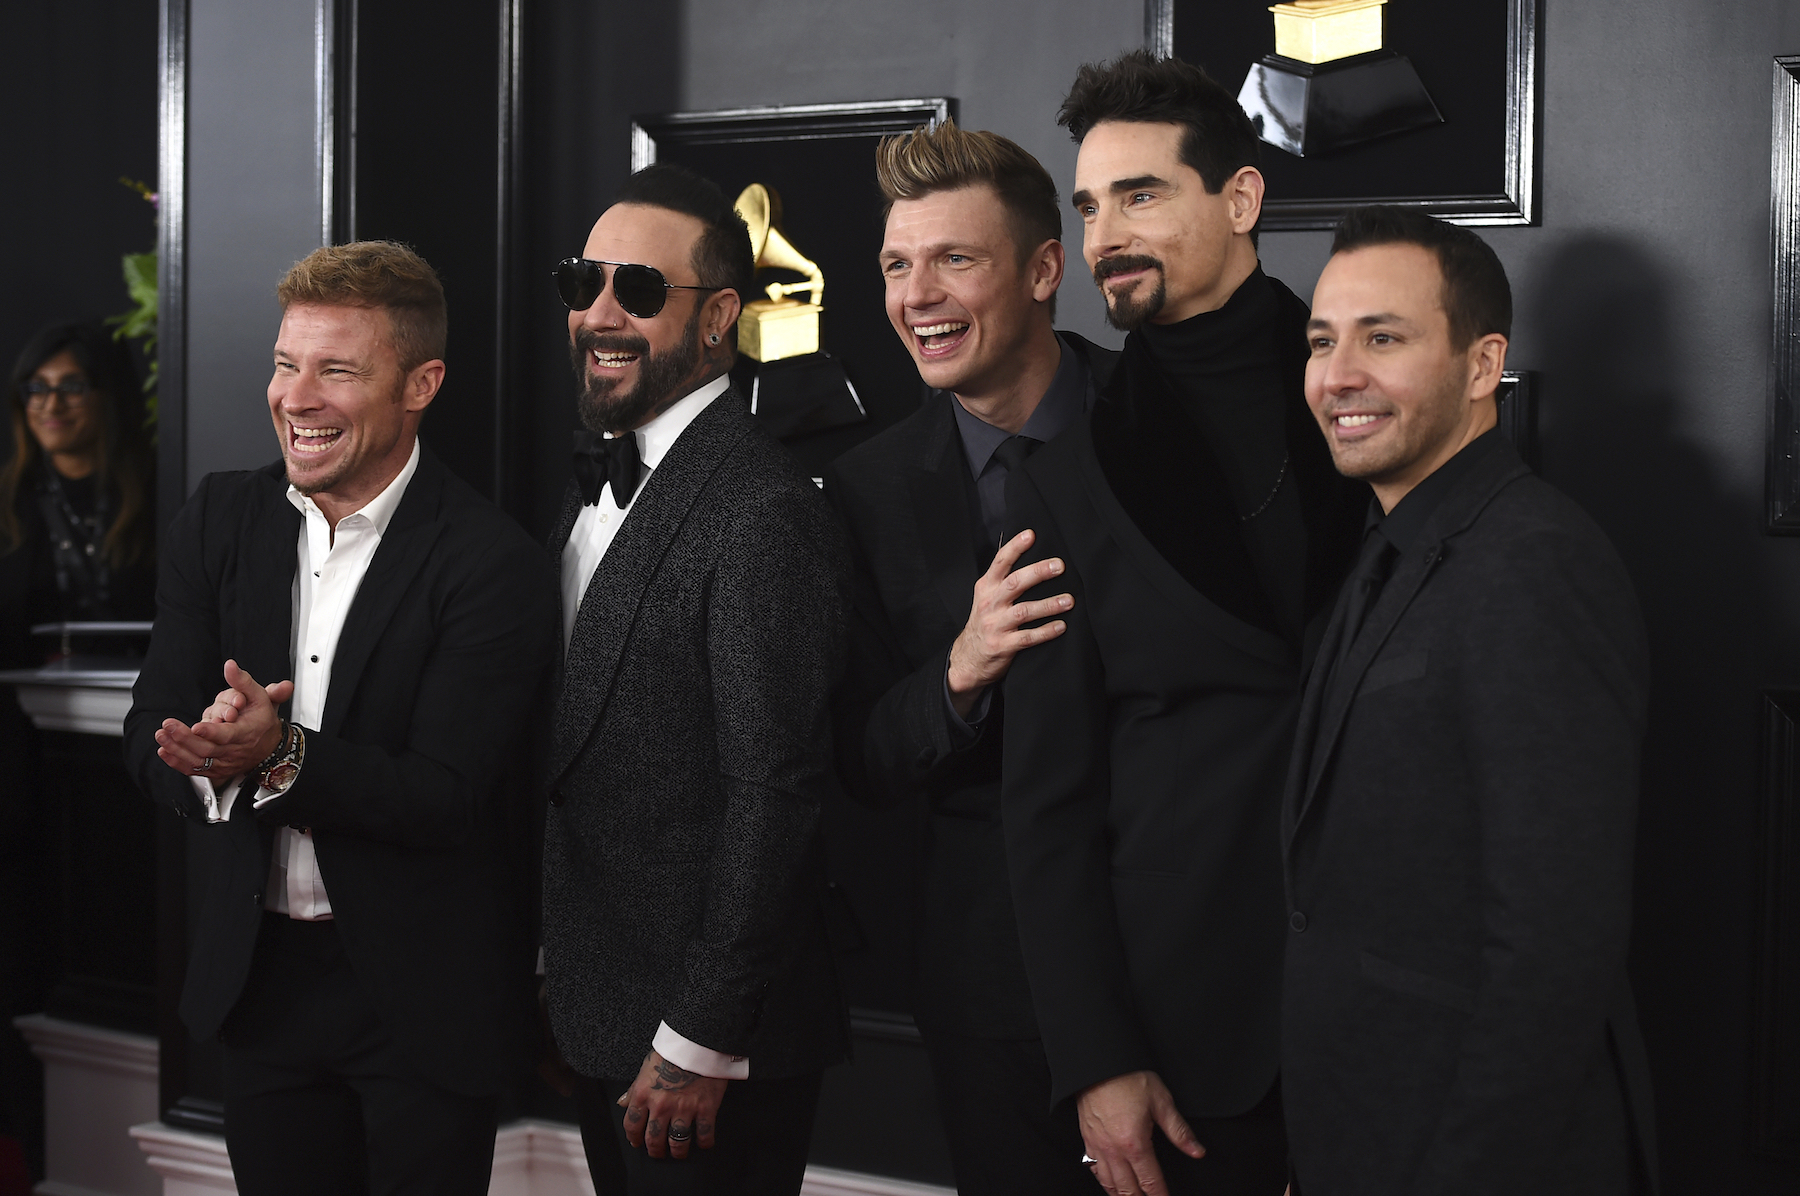 "<div class=""meta image-caption""><div class=""origin-logo origin-image ap""><span>AP</span></div><span class=""caption-text"">Brian Littrell, from left, AJ McLean, Nick Carter, Kevin Richardson, and Howie Dorough of The Backstreet Boys arrive at the 61st annual Grammy Awards. (Jordan Strauss/Invision/AP)</span></div>"